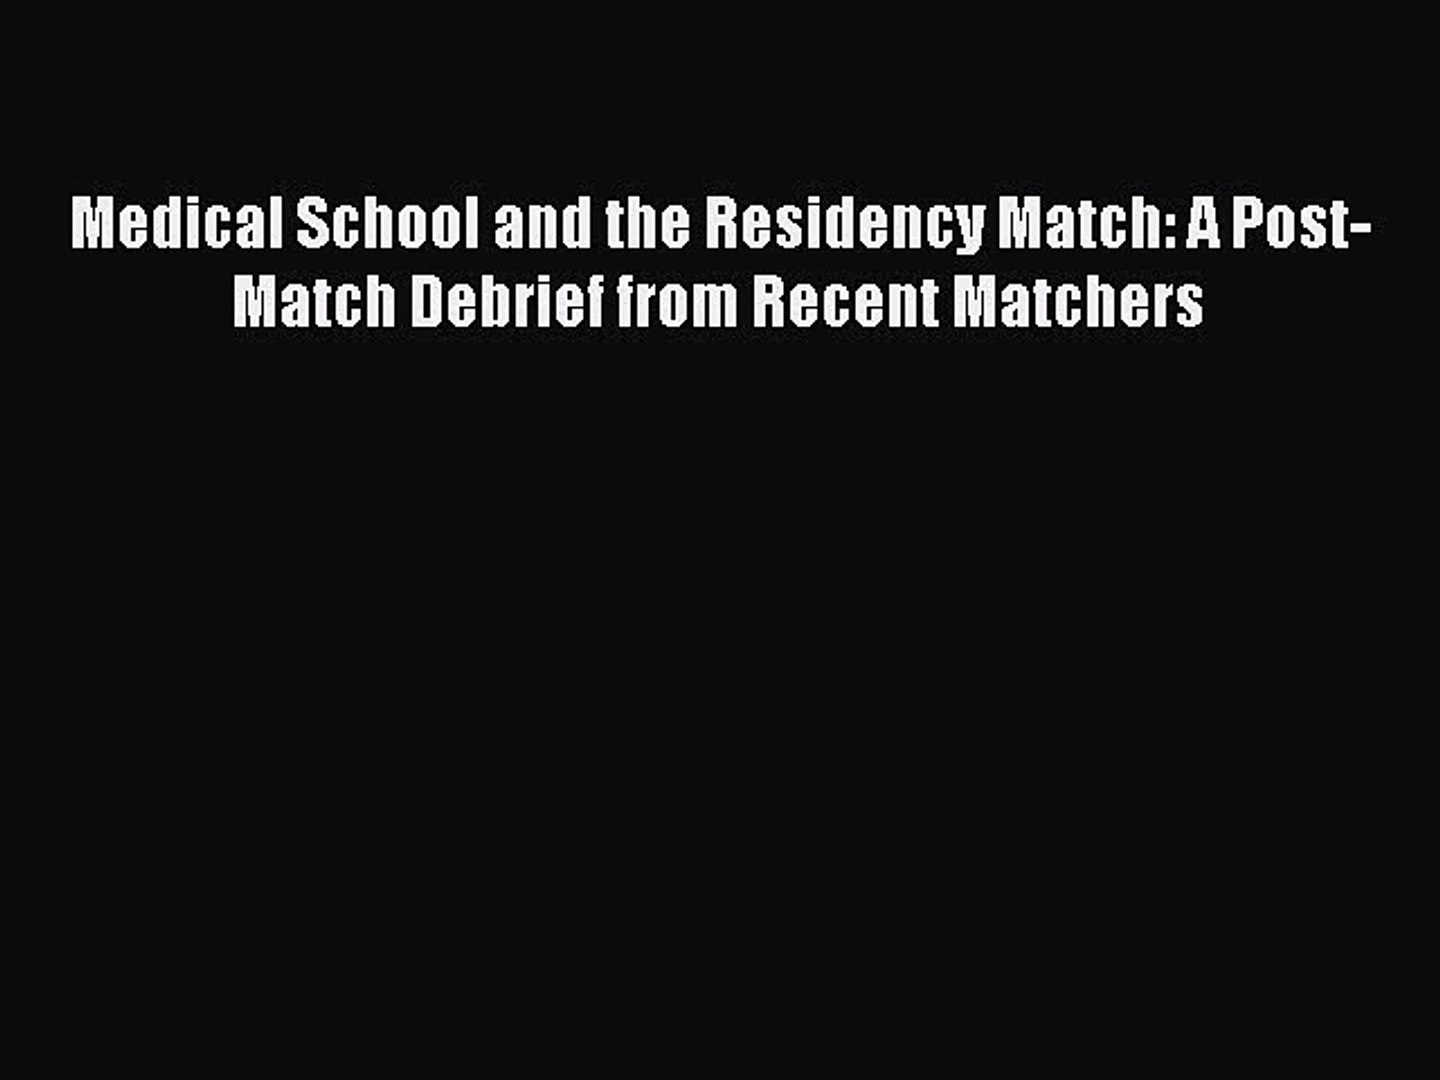 Download Medical School and the Residency Match: A Post-Match Debrief from Recent Matchers